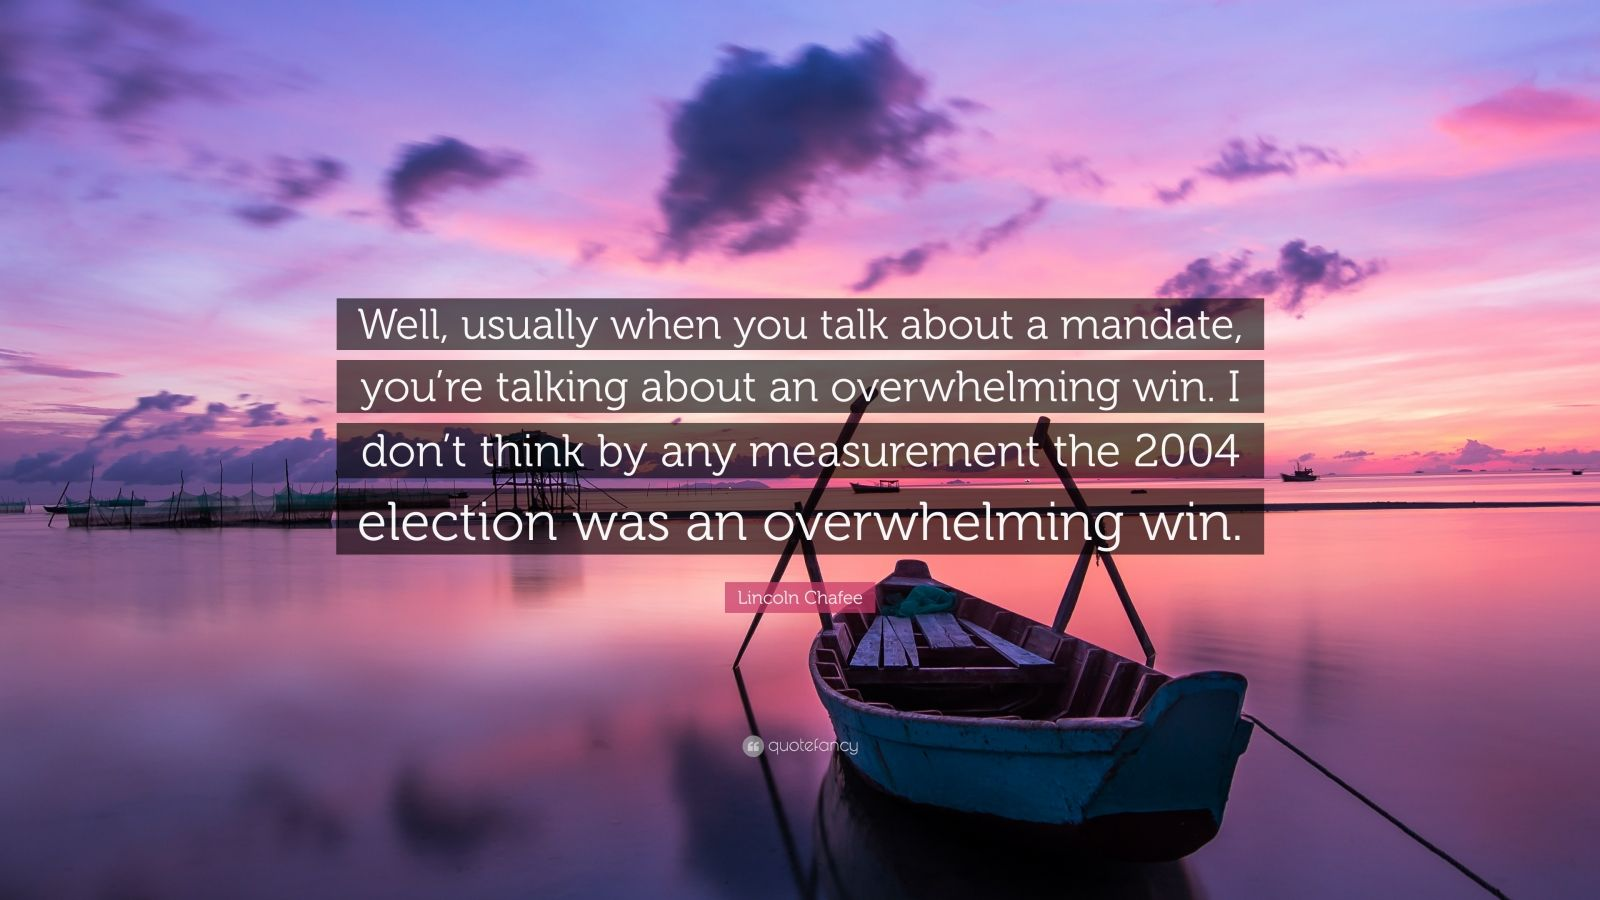 """Lincoln Chafee Quote: """"Well, usually when you talk about a mandate, you're talking about an overwhelming win. I don't think by any measurement the 2004 election was an overwhelming win."""""""